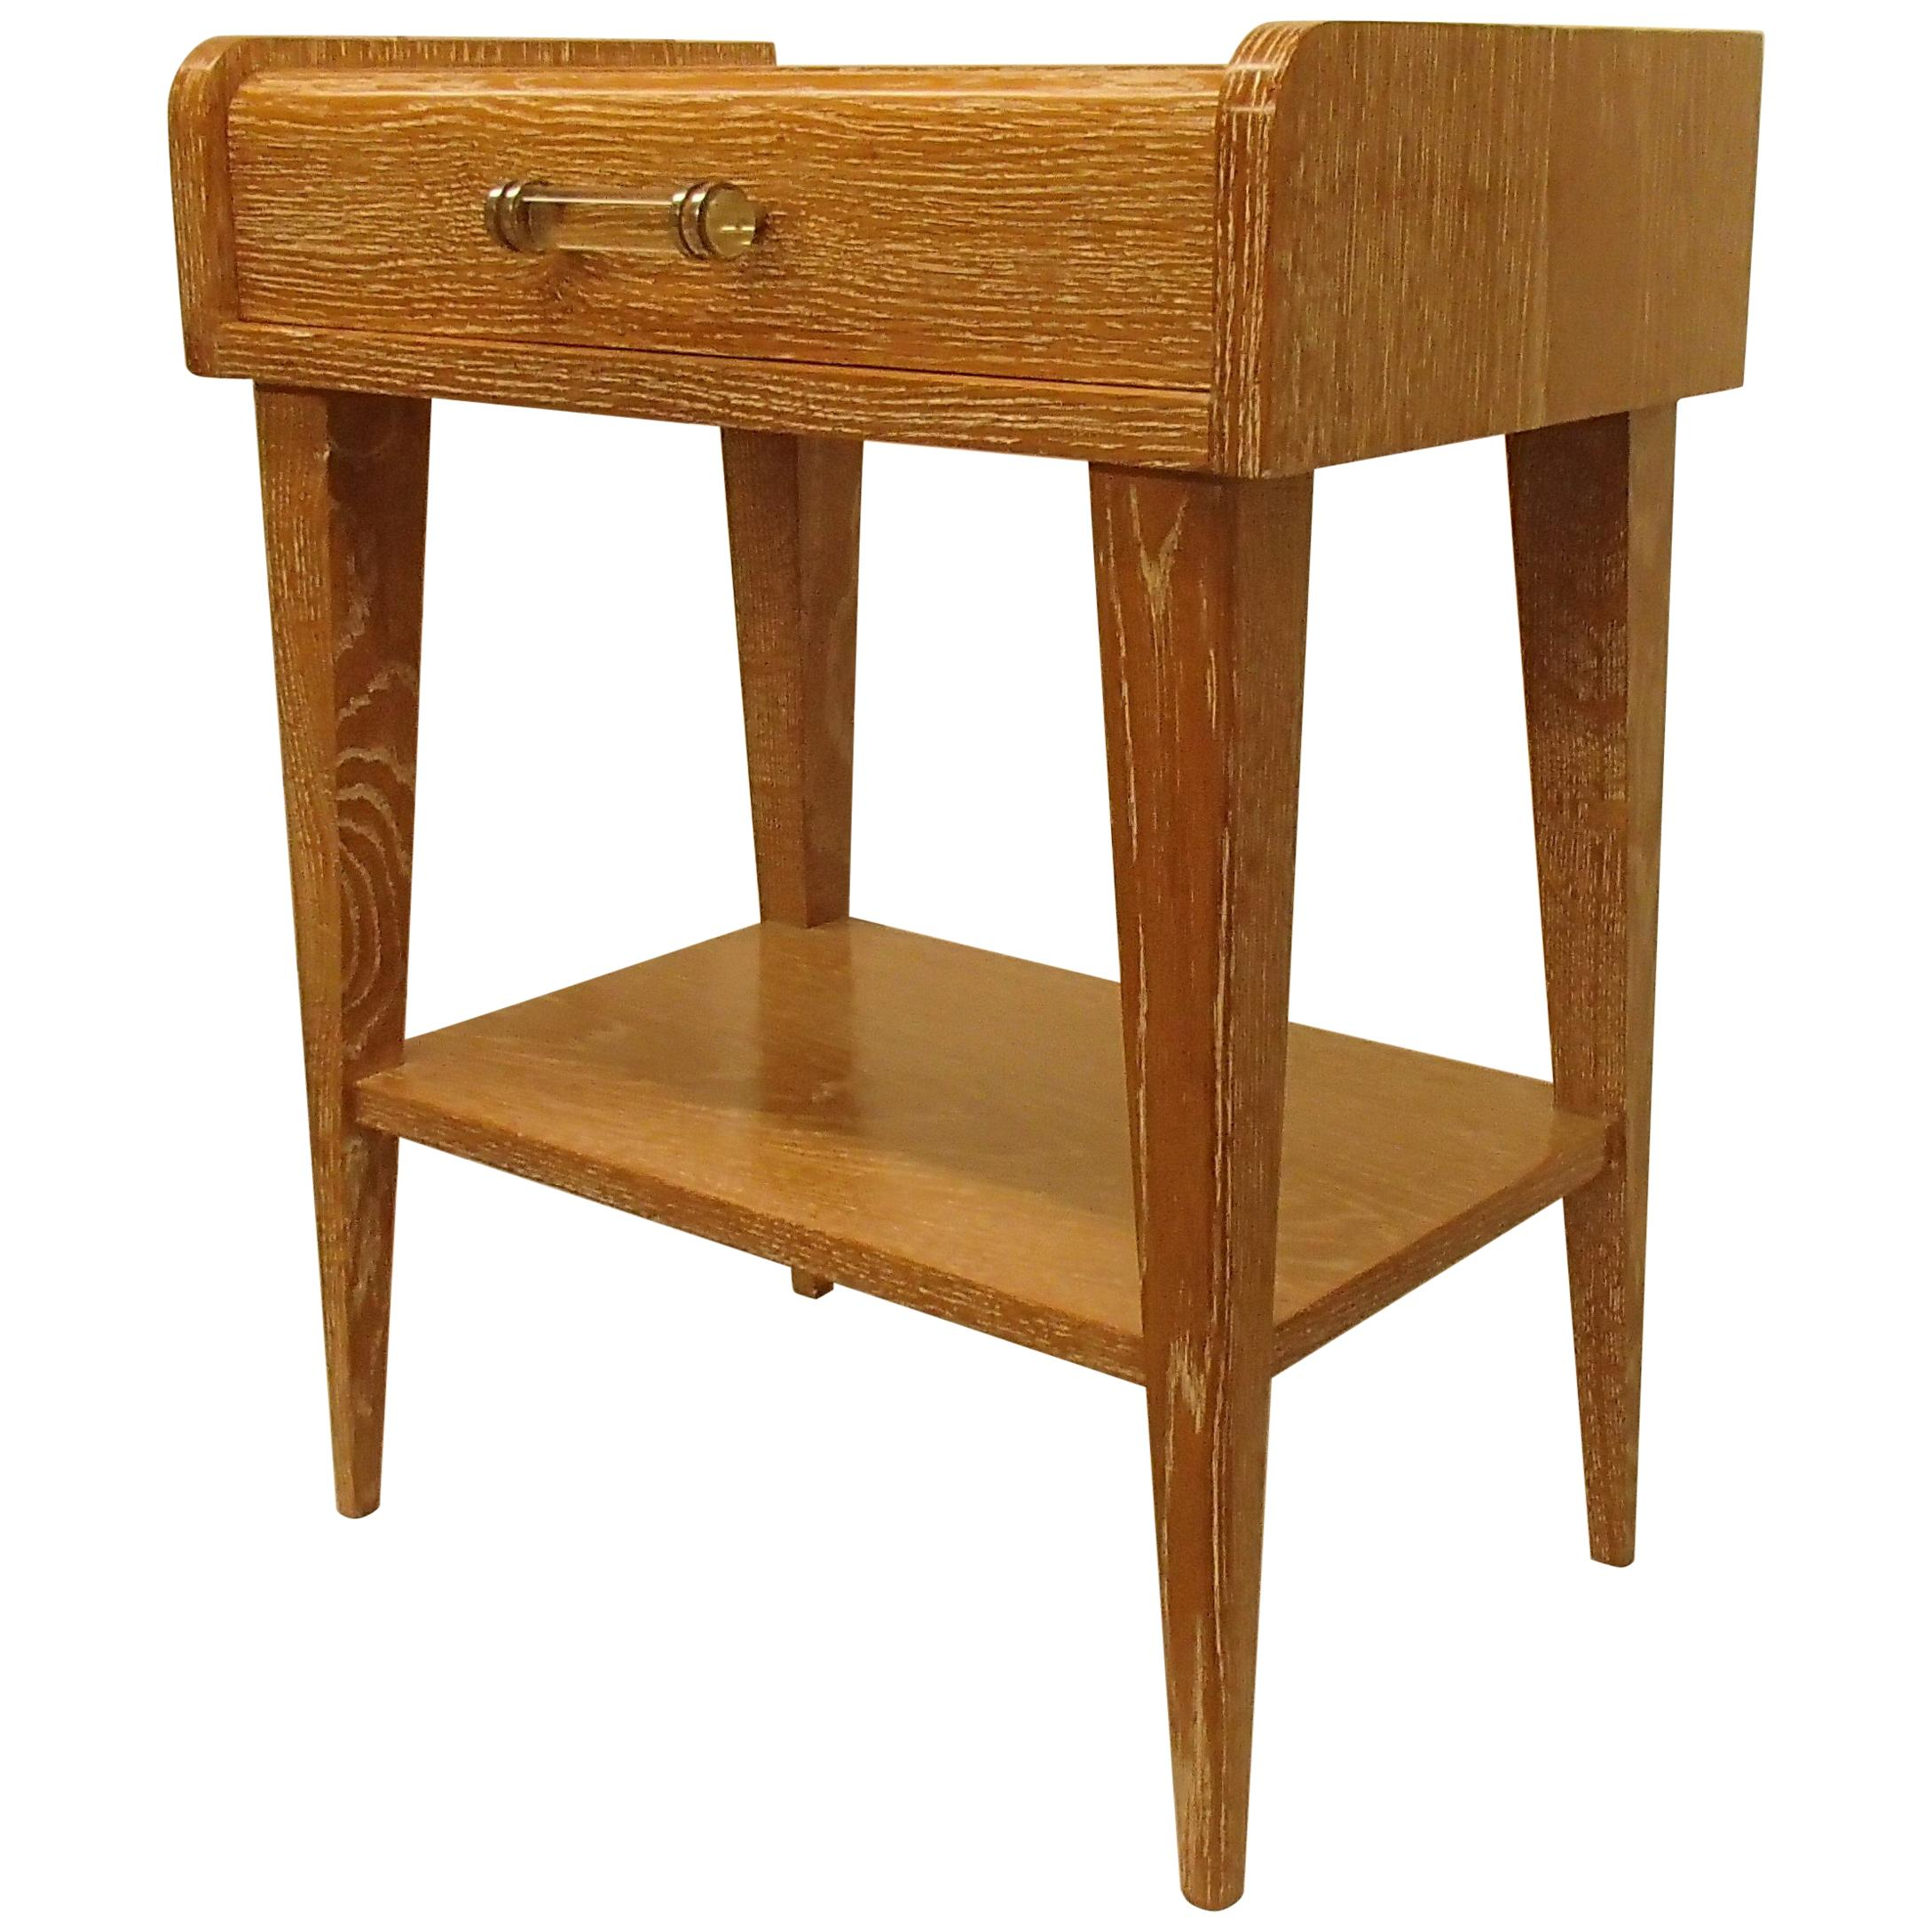 1940 This Nightstand or Side Table Cerused Oak with Glass Handle